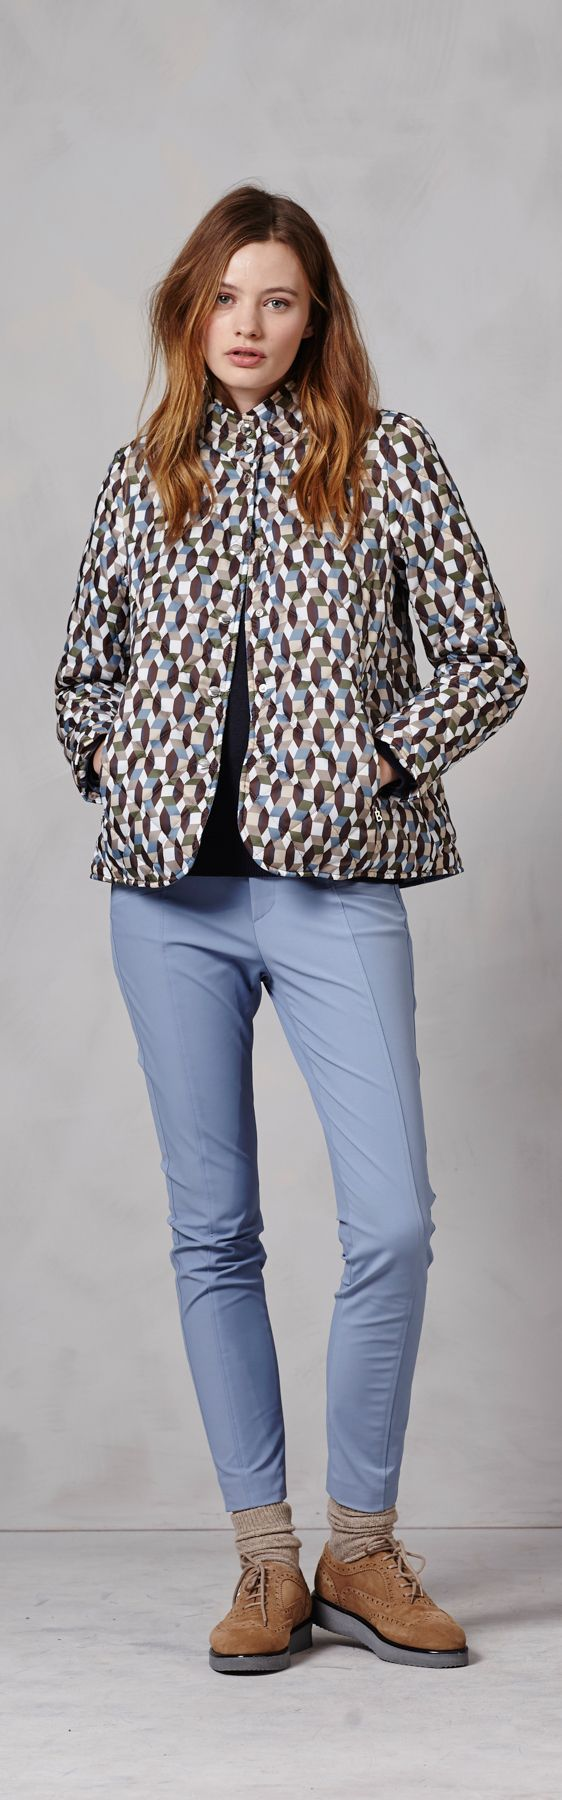 Cute, geometric patterned A-line coats are a perfect way to add some sweetness and intrigue to a winter outfit.